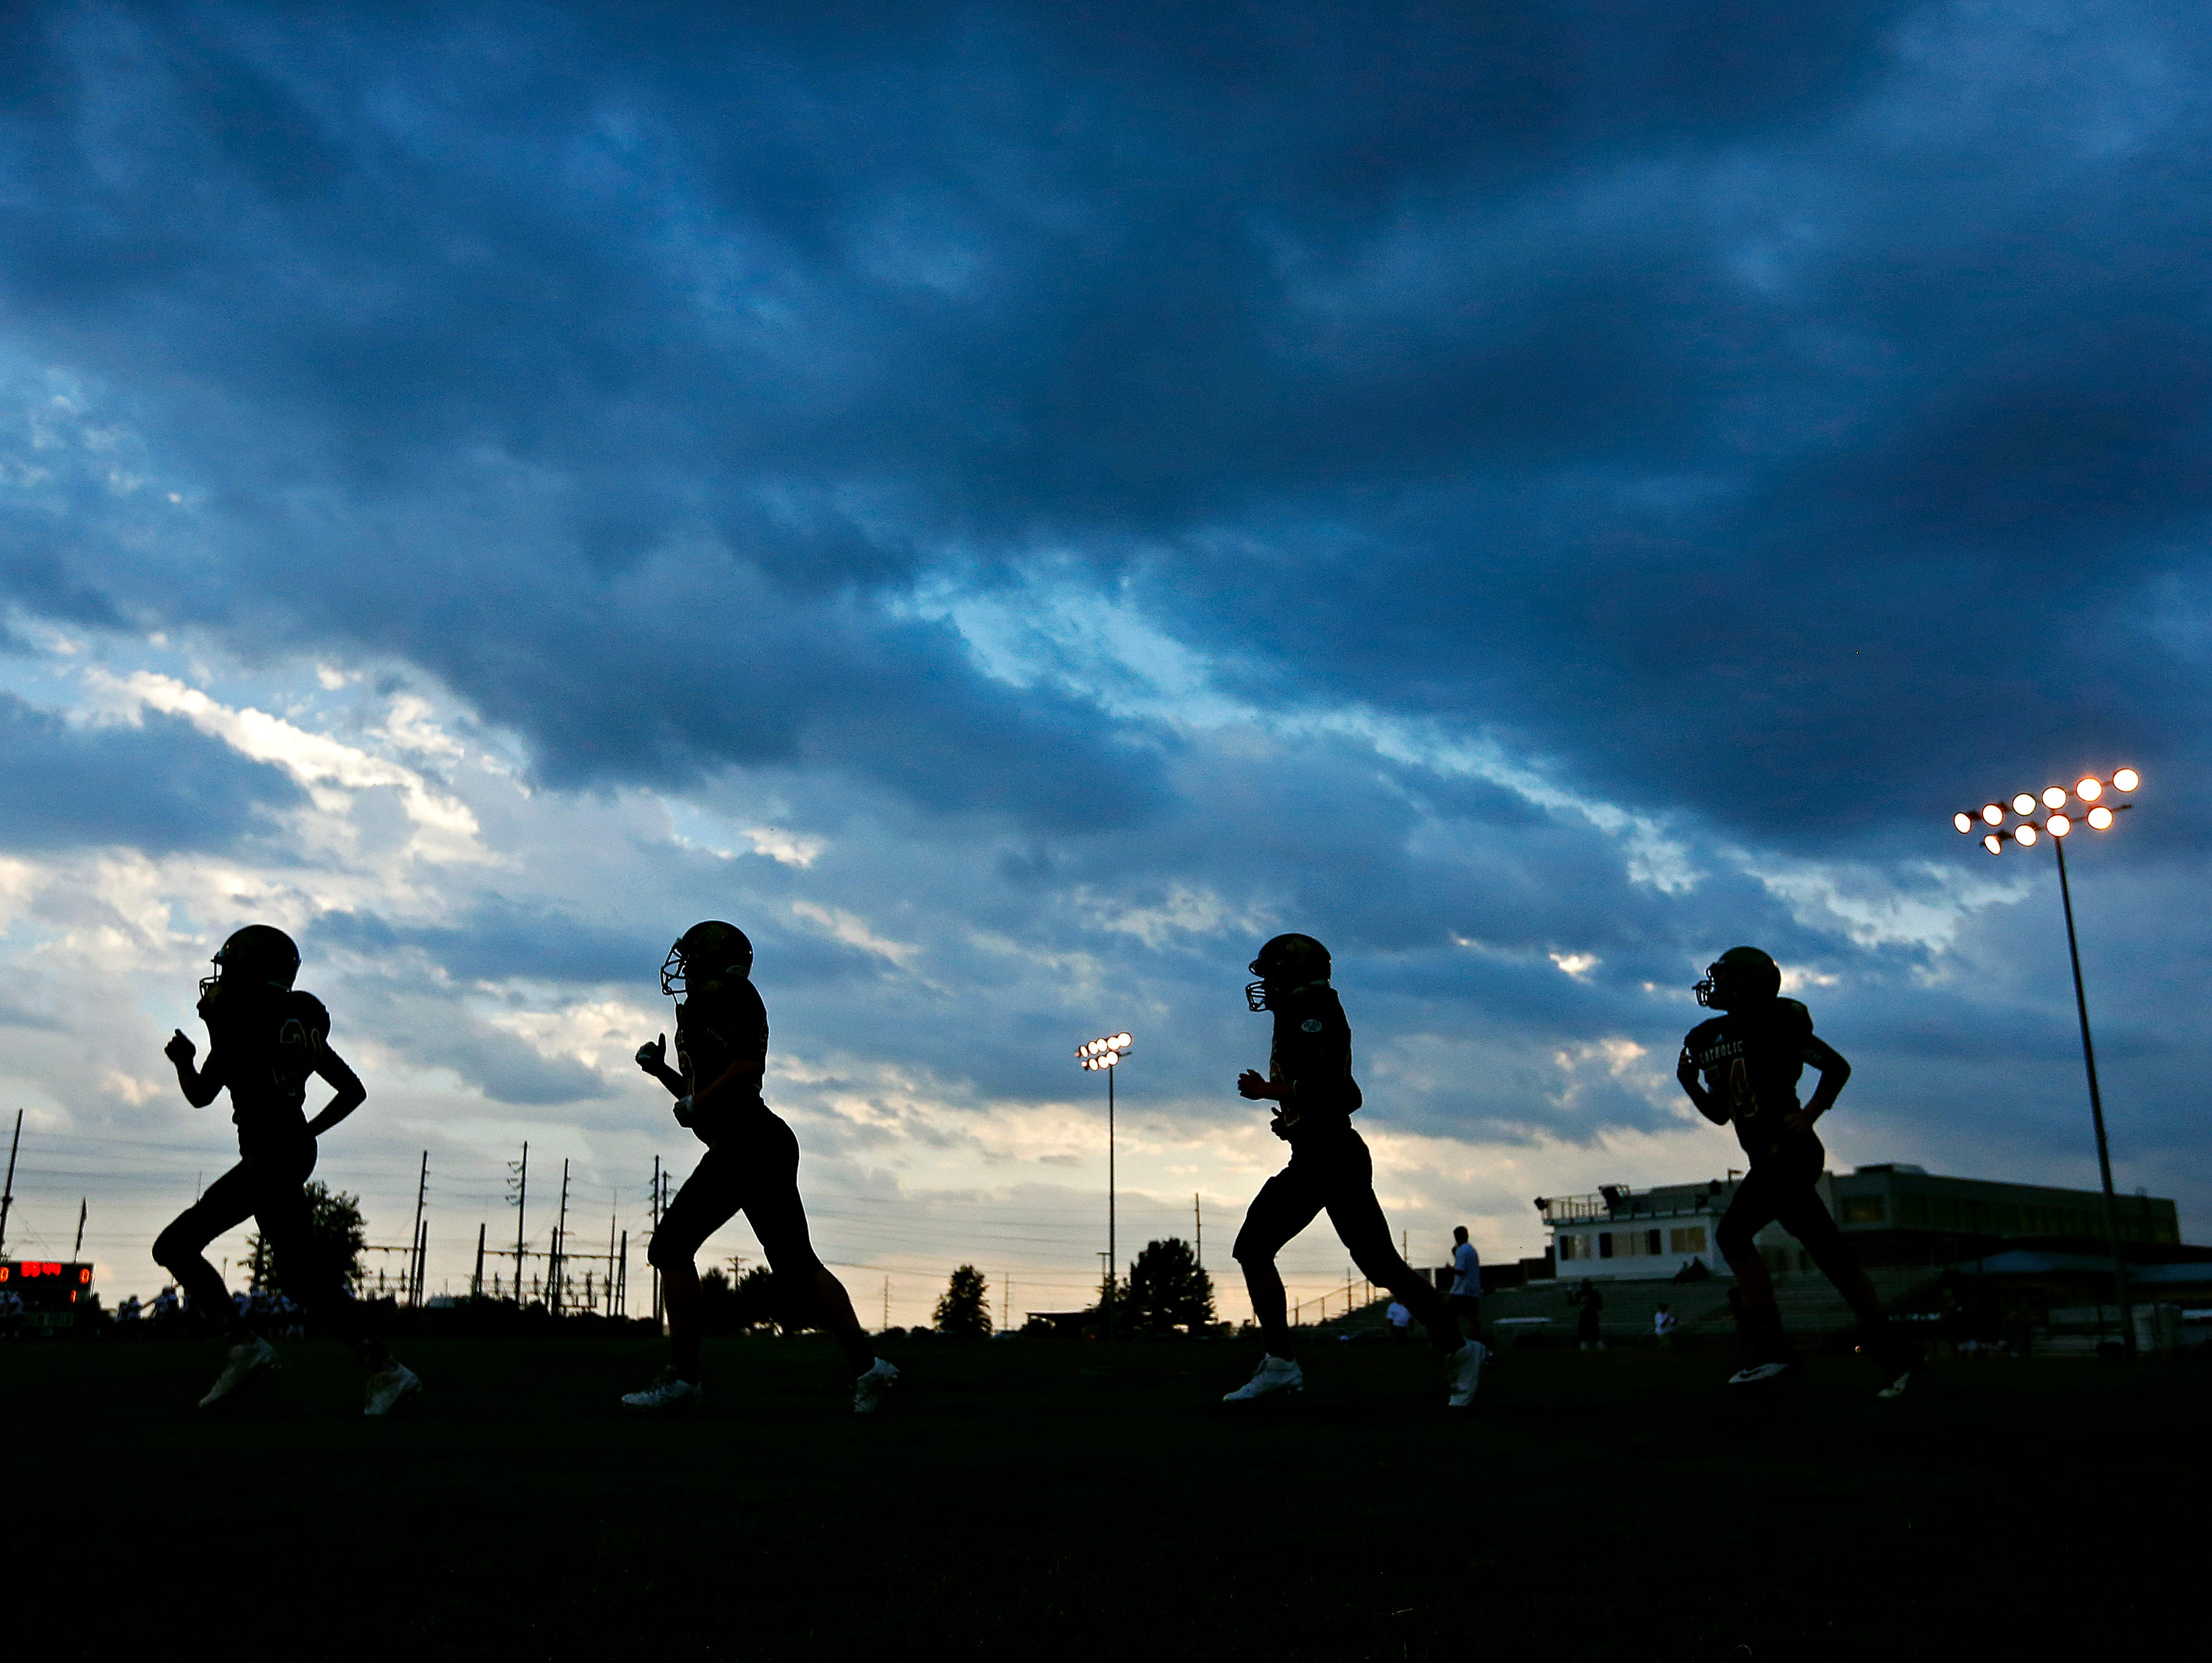 Springfield Catholic players jog during warm ups prior to the game between Springfield Catholic High School and Fair Grove High School at Springfield Catholic High School in Springfield, Mo. on Sept. 9, 2016. The game was postponed due to severe weather in the area.